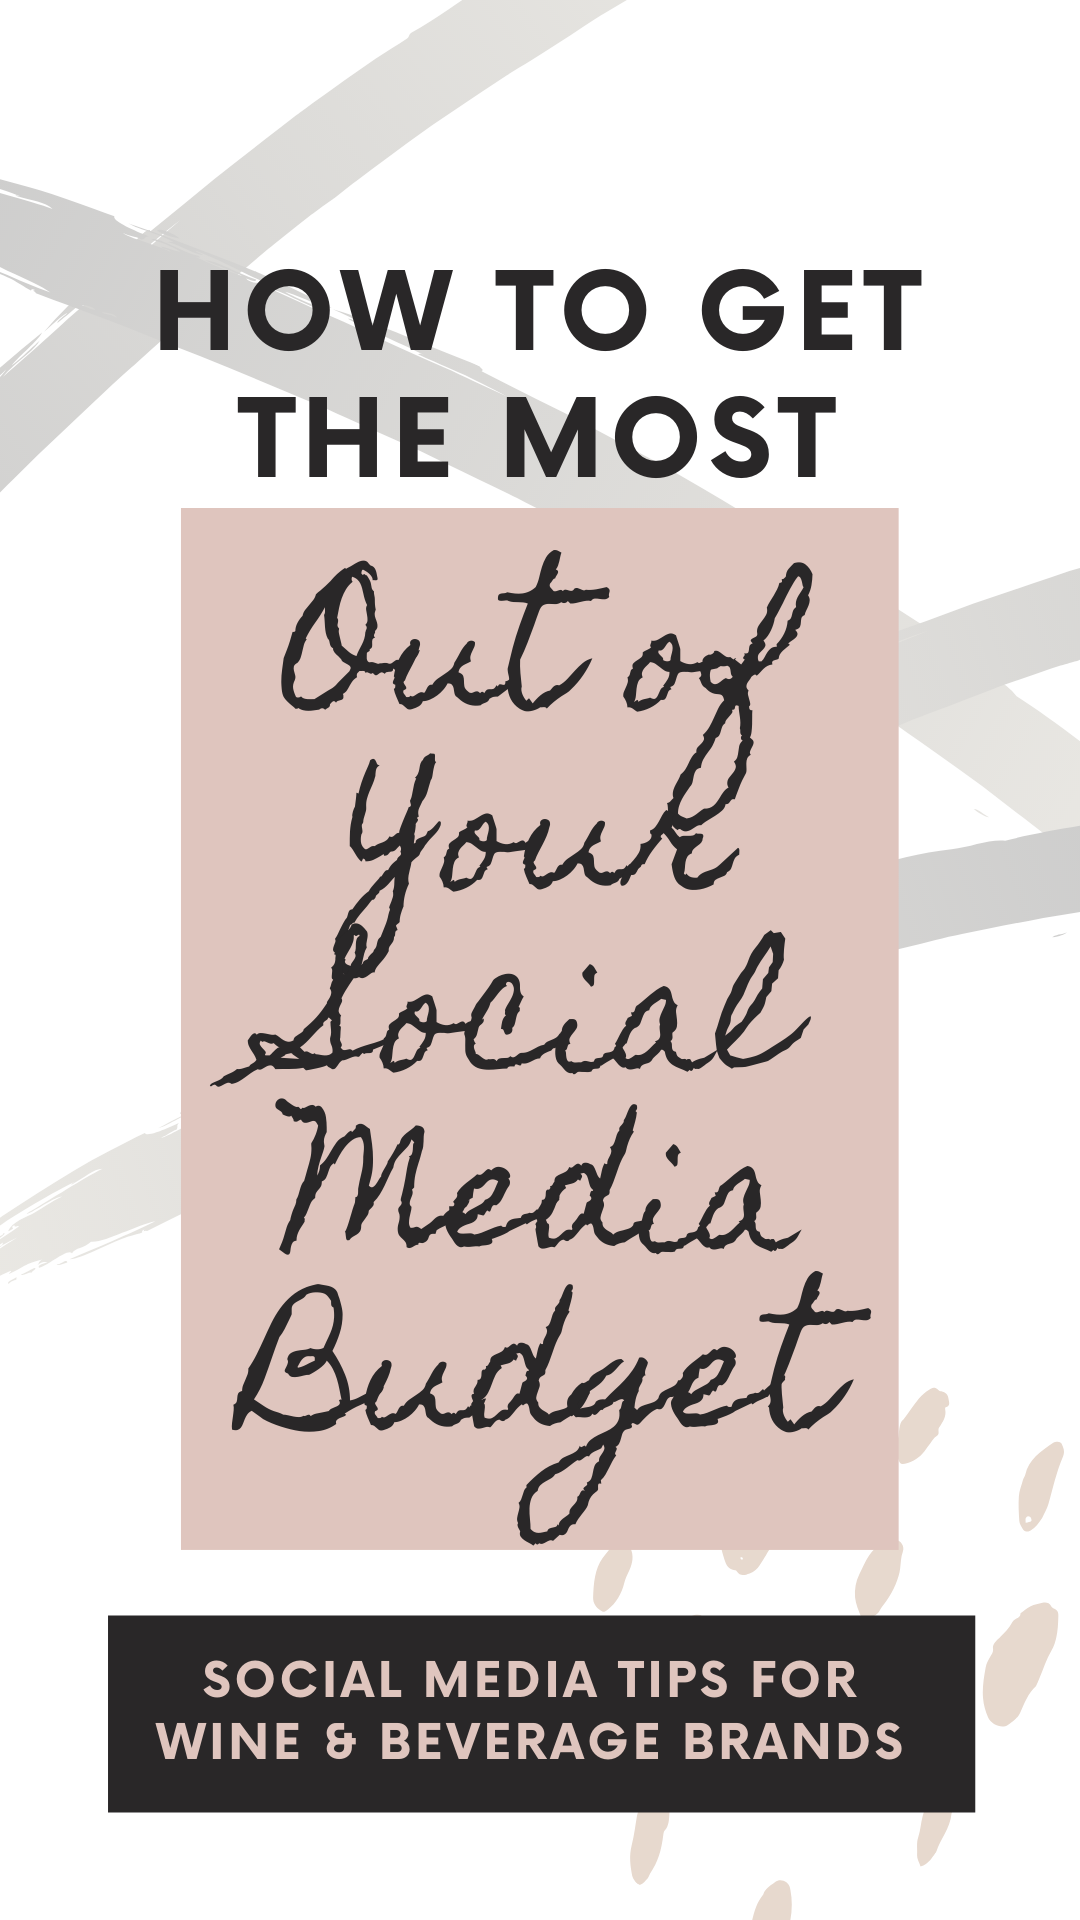 How to get the most out of your social media budget